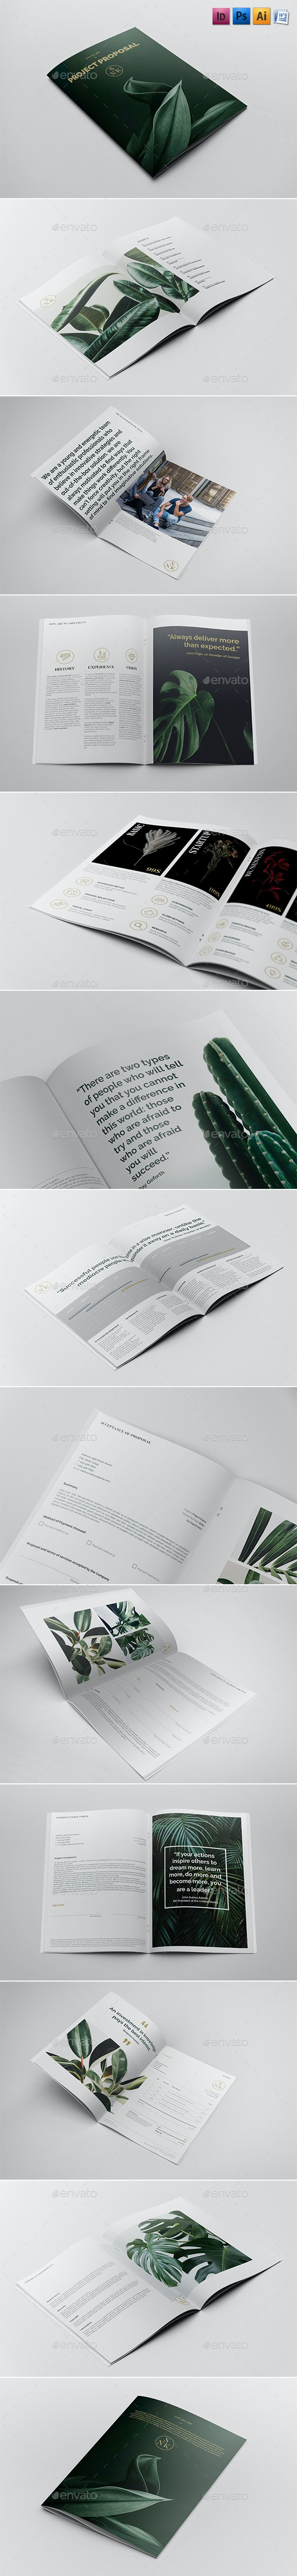 Project Proposal Contract & Invoice - Brochures Print Templates